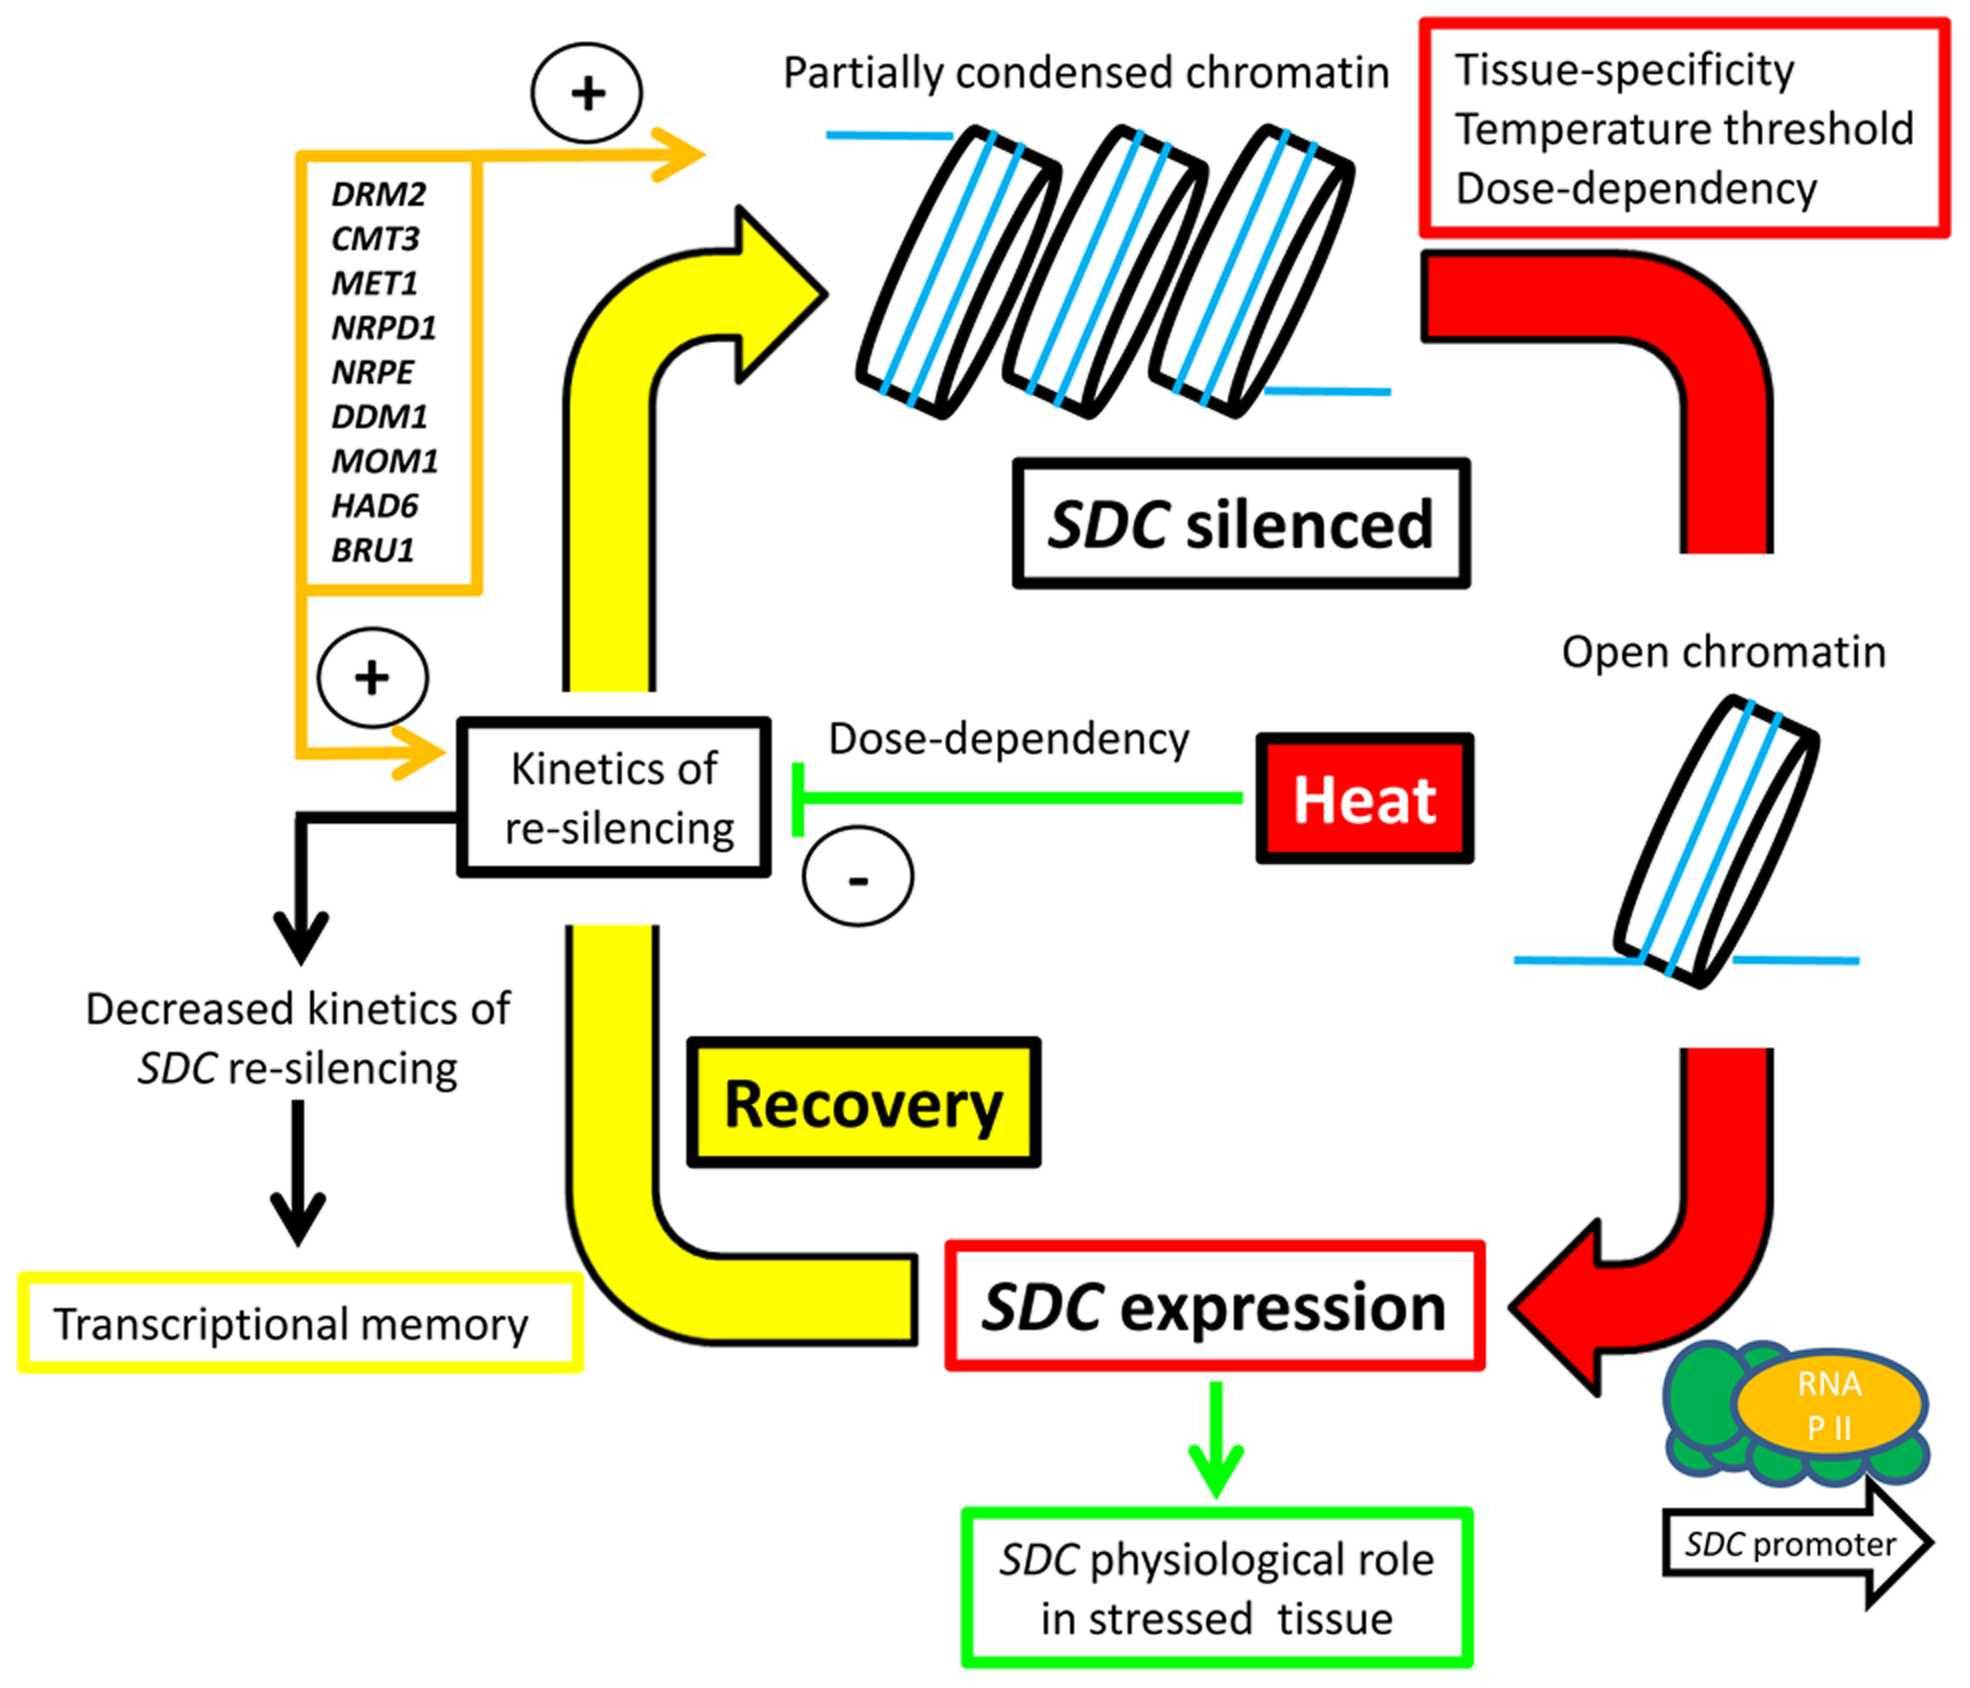 Hypothesized silence/de-silence loop model showing the different steps of transcriptional epigenetic control in the heat-induced expression of the <i>SDC</i> gene.